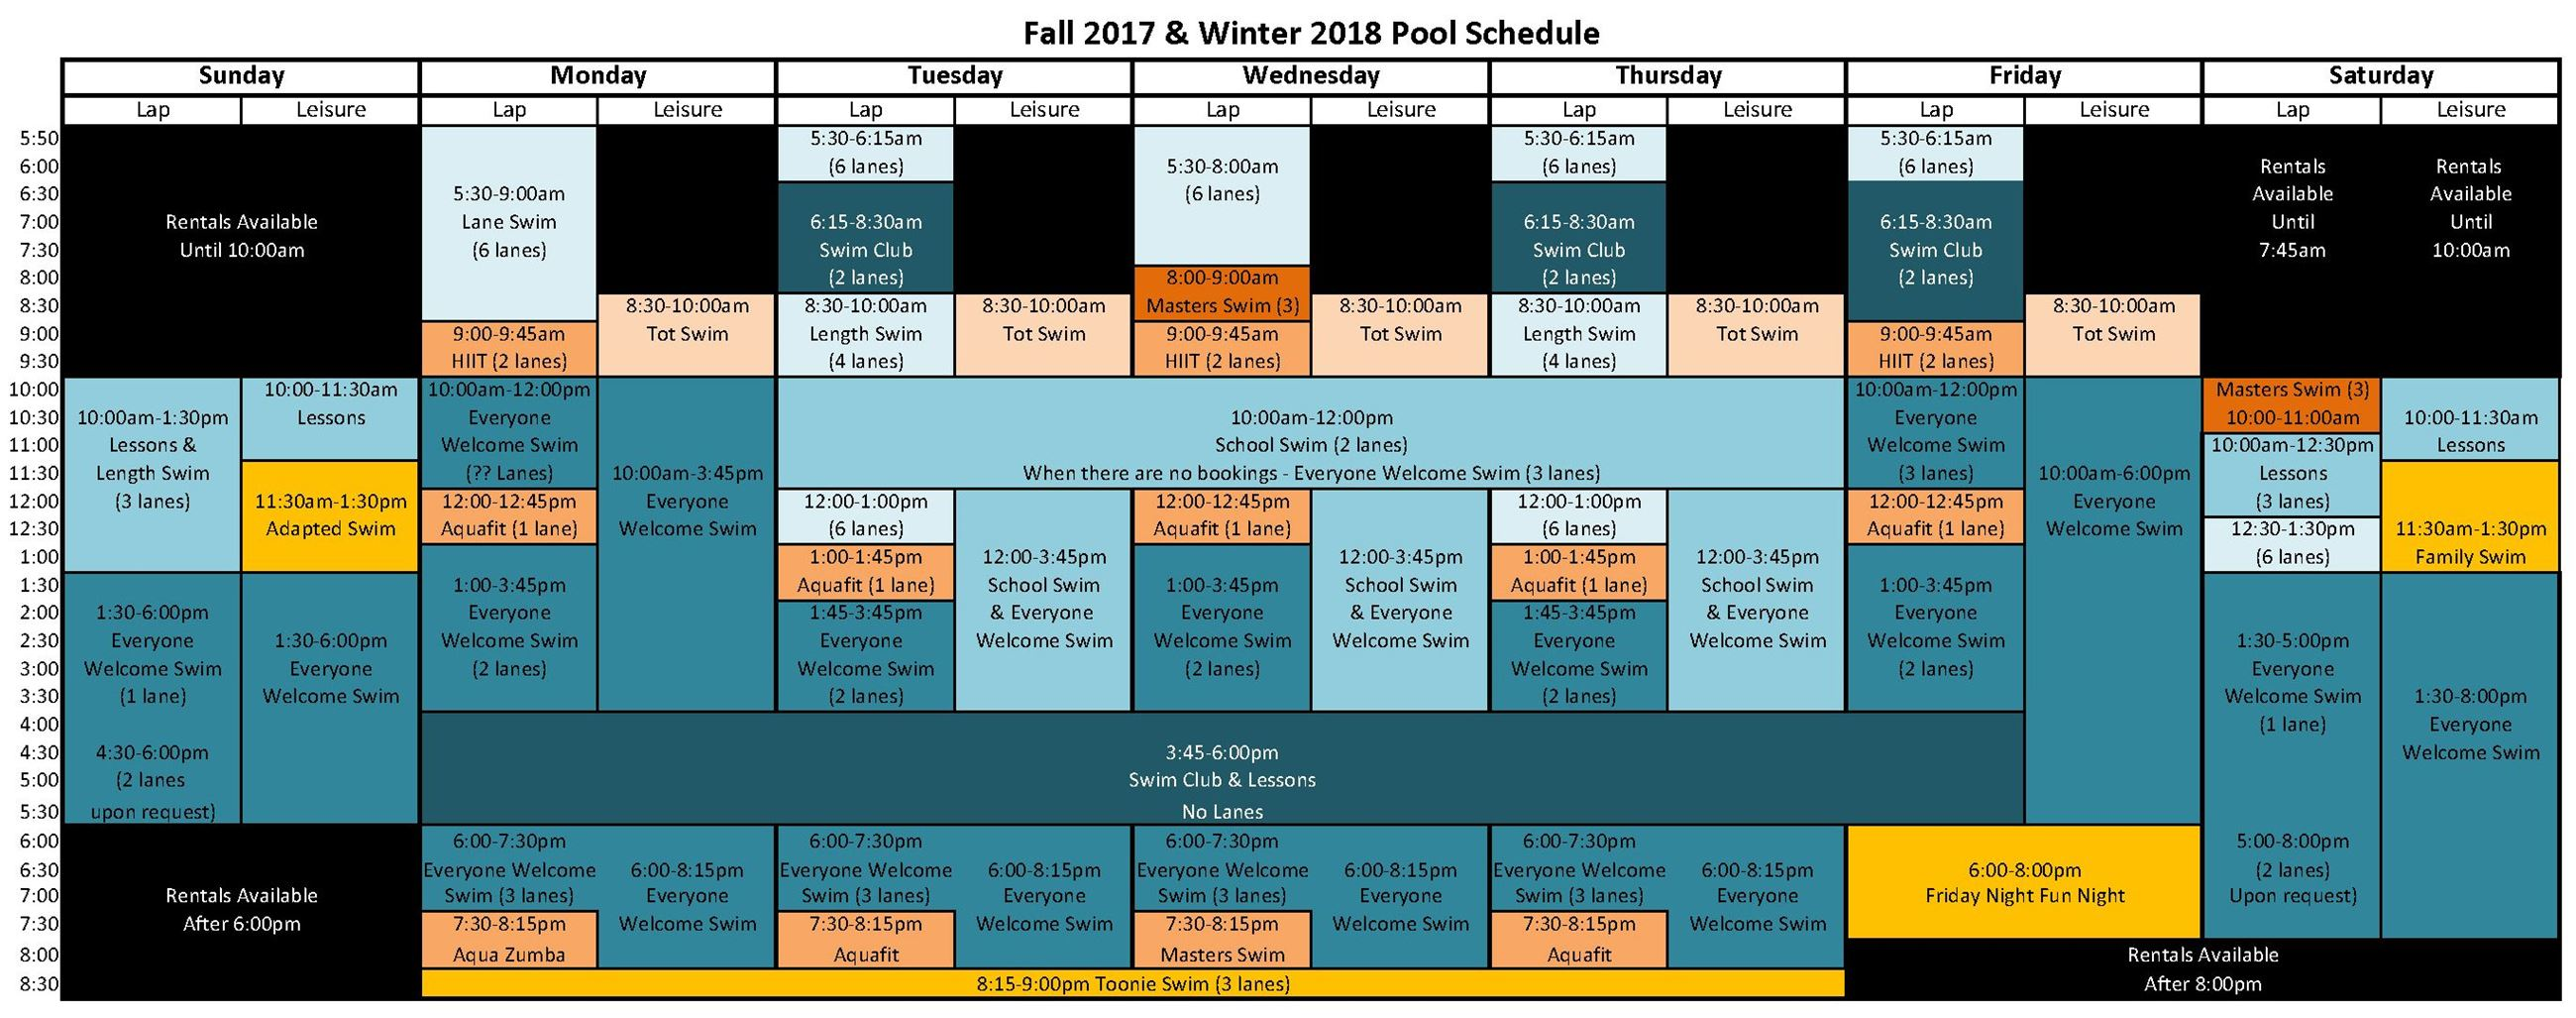 pool schedule winter 2018 colour